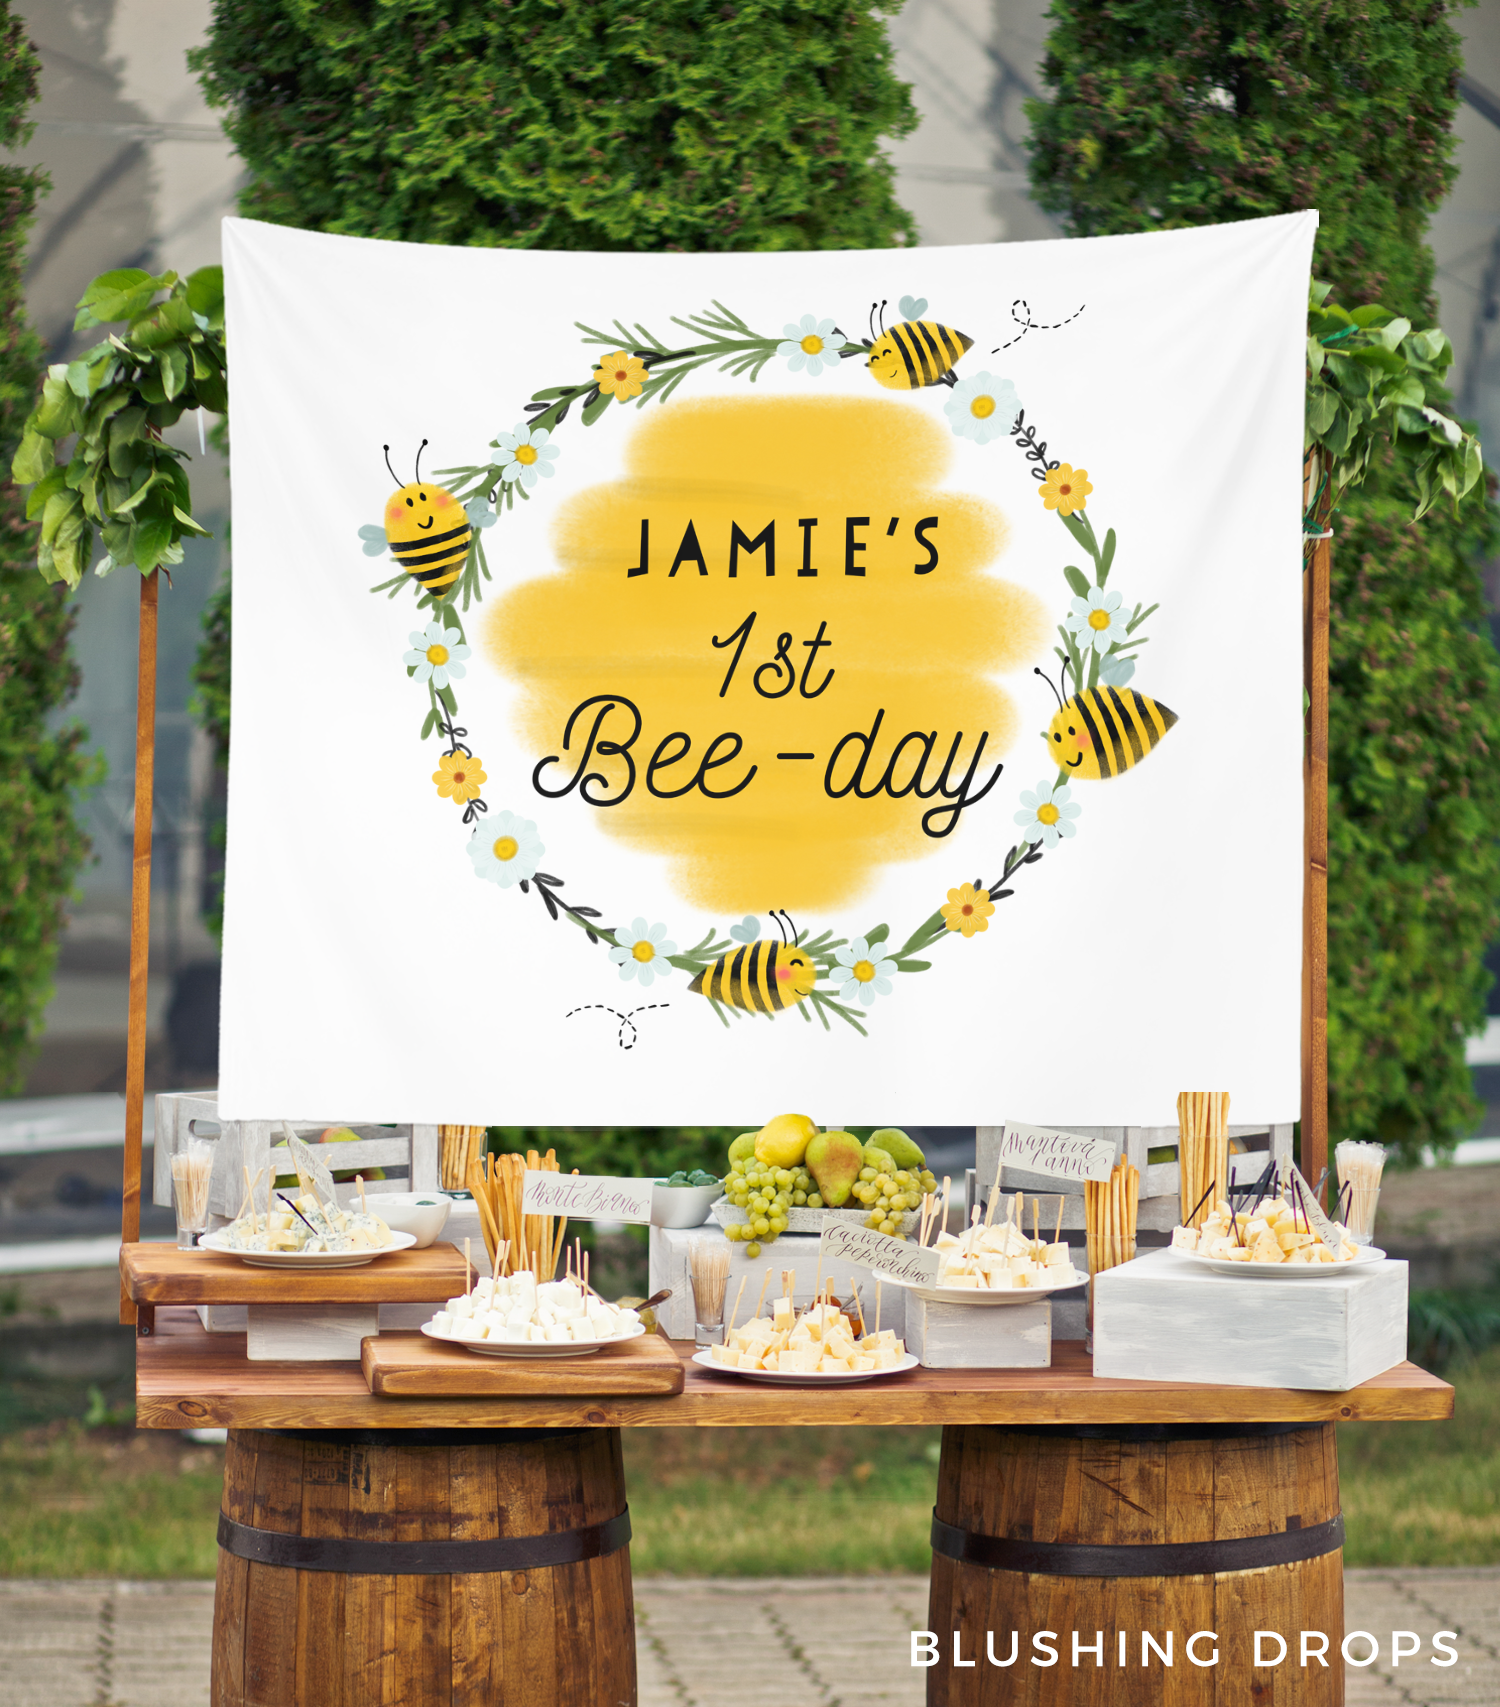 Beeday Celebrate Your Little Honey Turning One Perfect 1st Birthday Party Theme For Your Chi Bumble Bee Birthday Bee Birthday Party Bee Themed Birthday Party